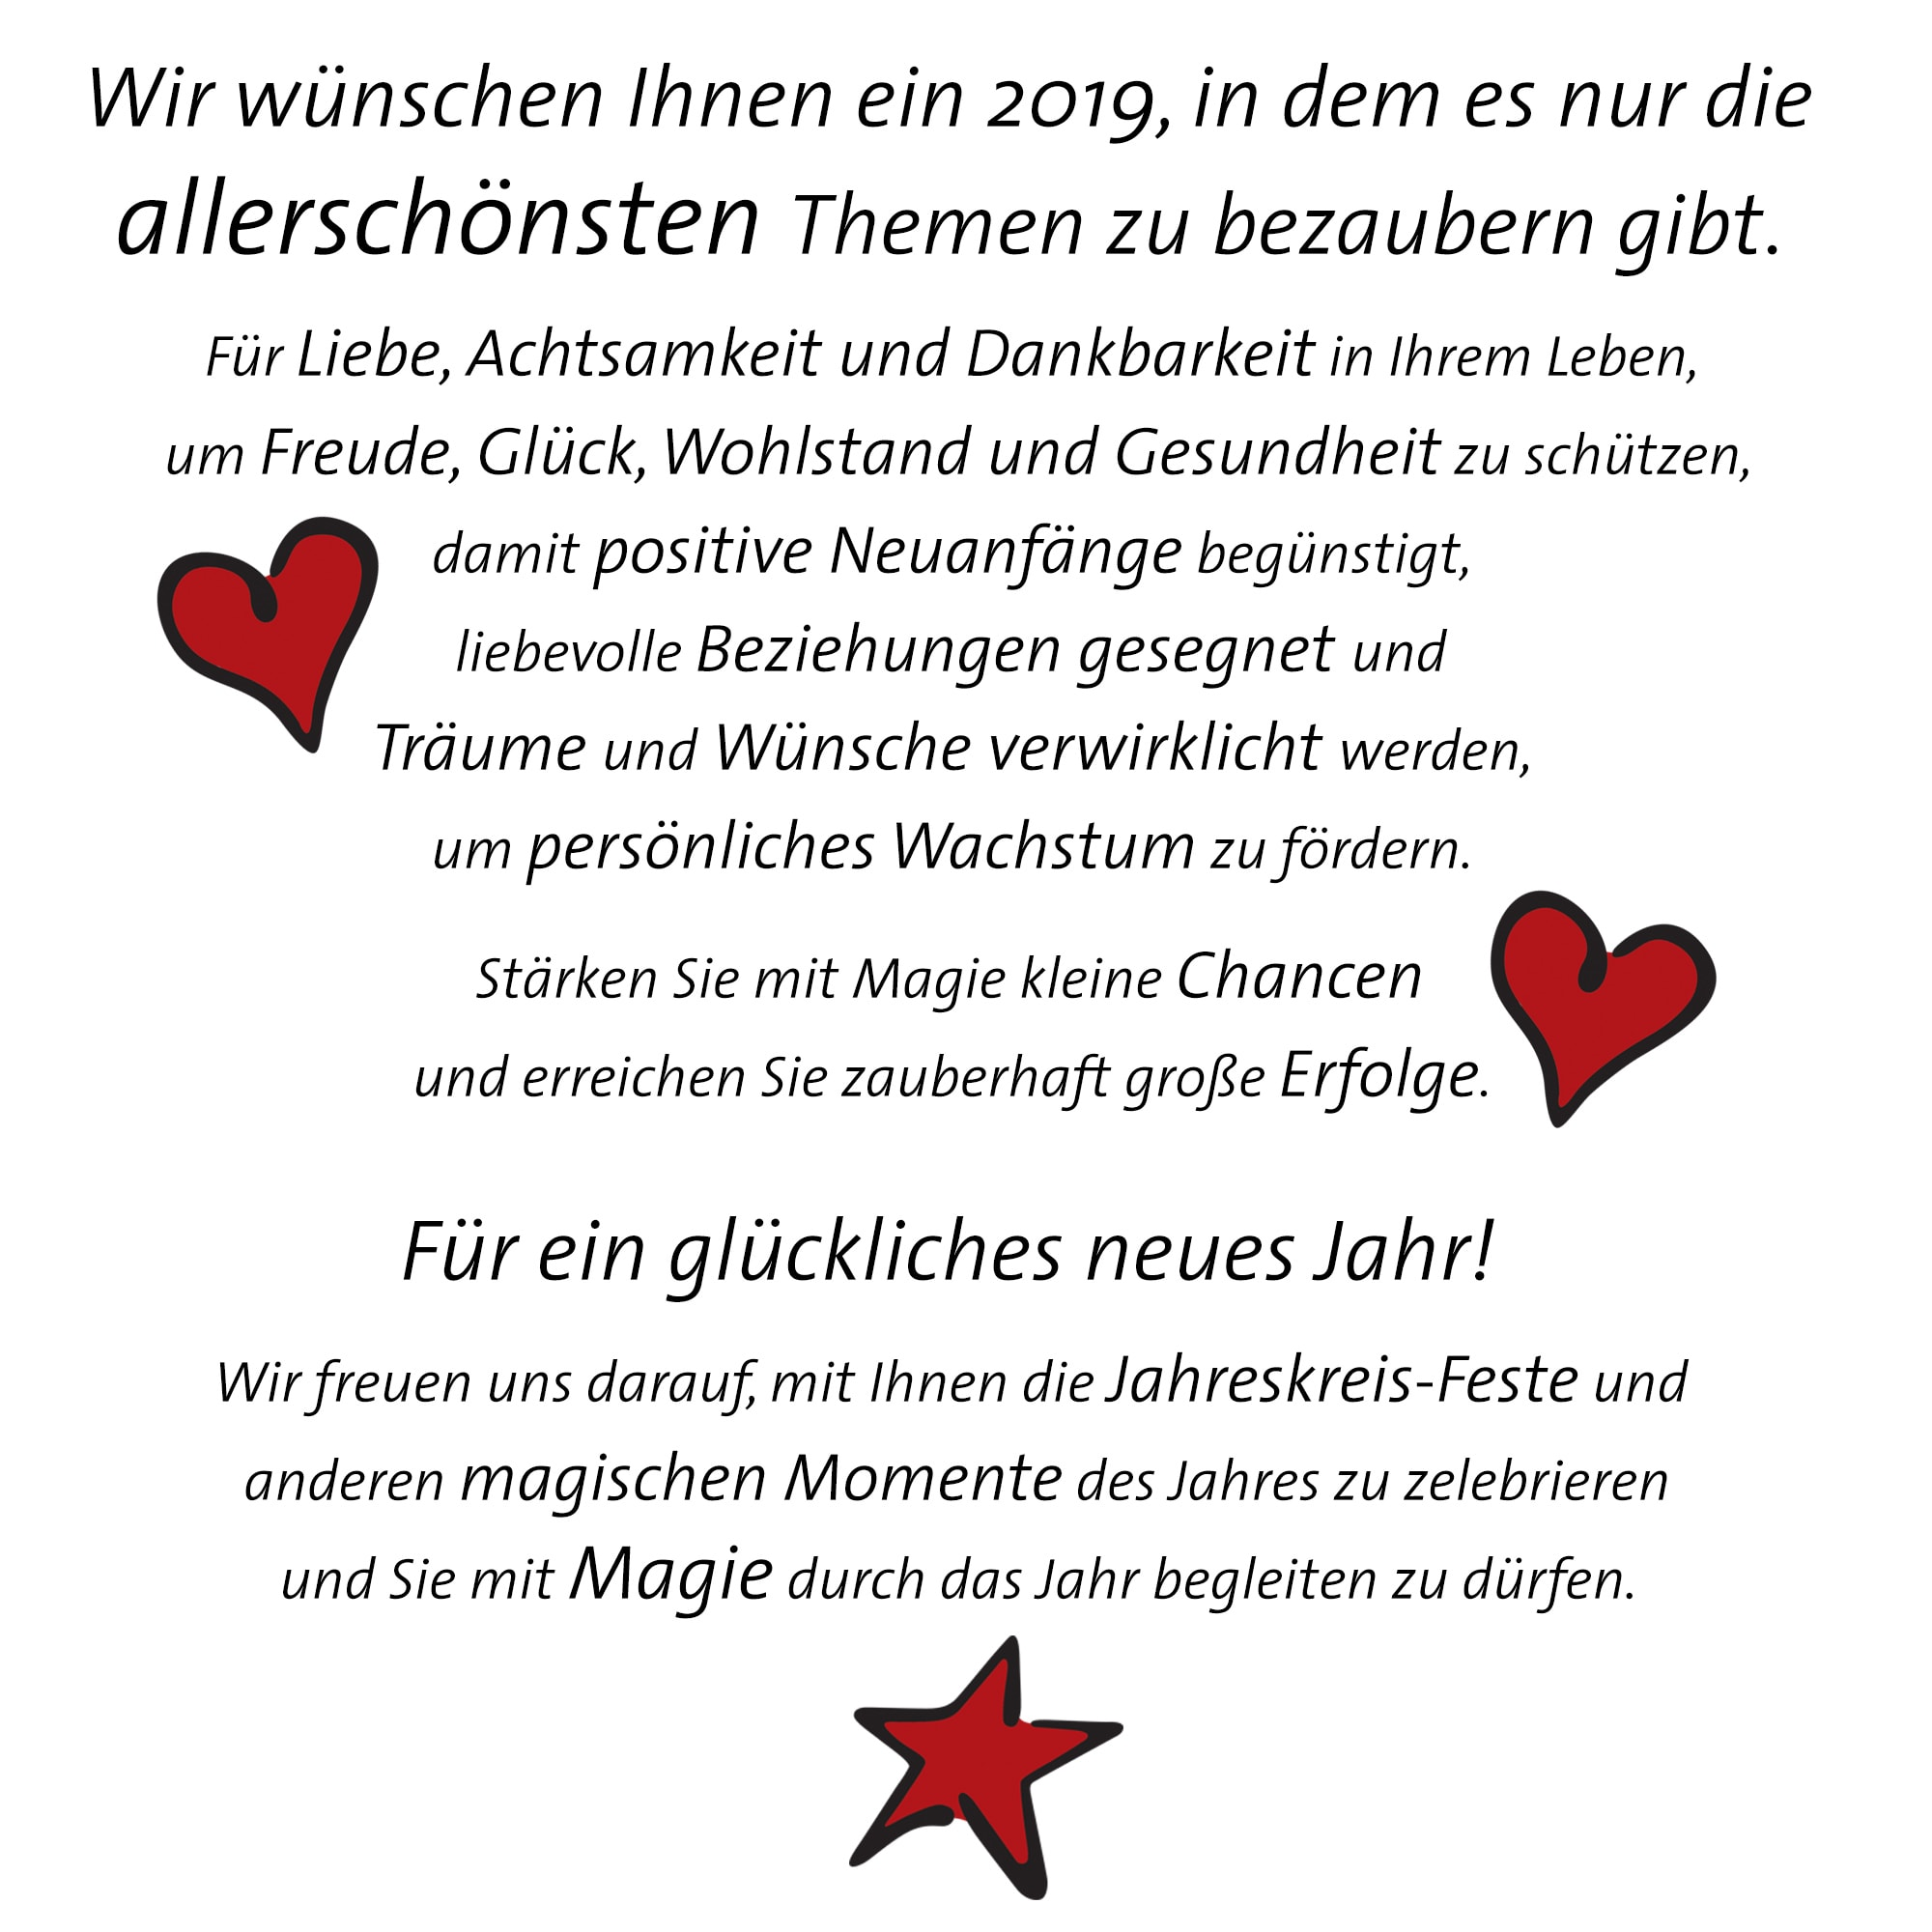 Dating sims für Jungs